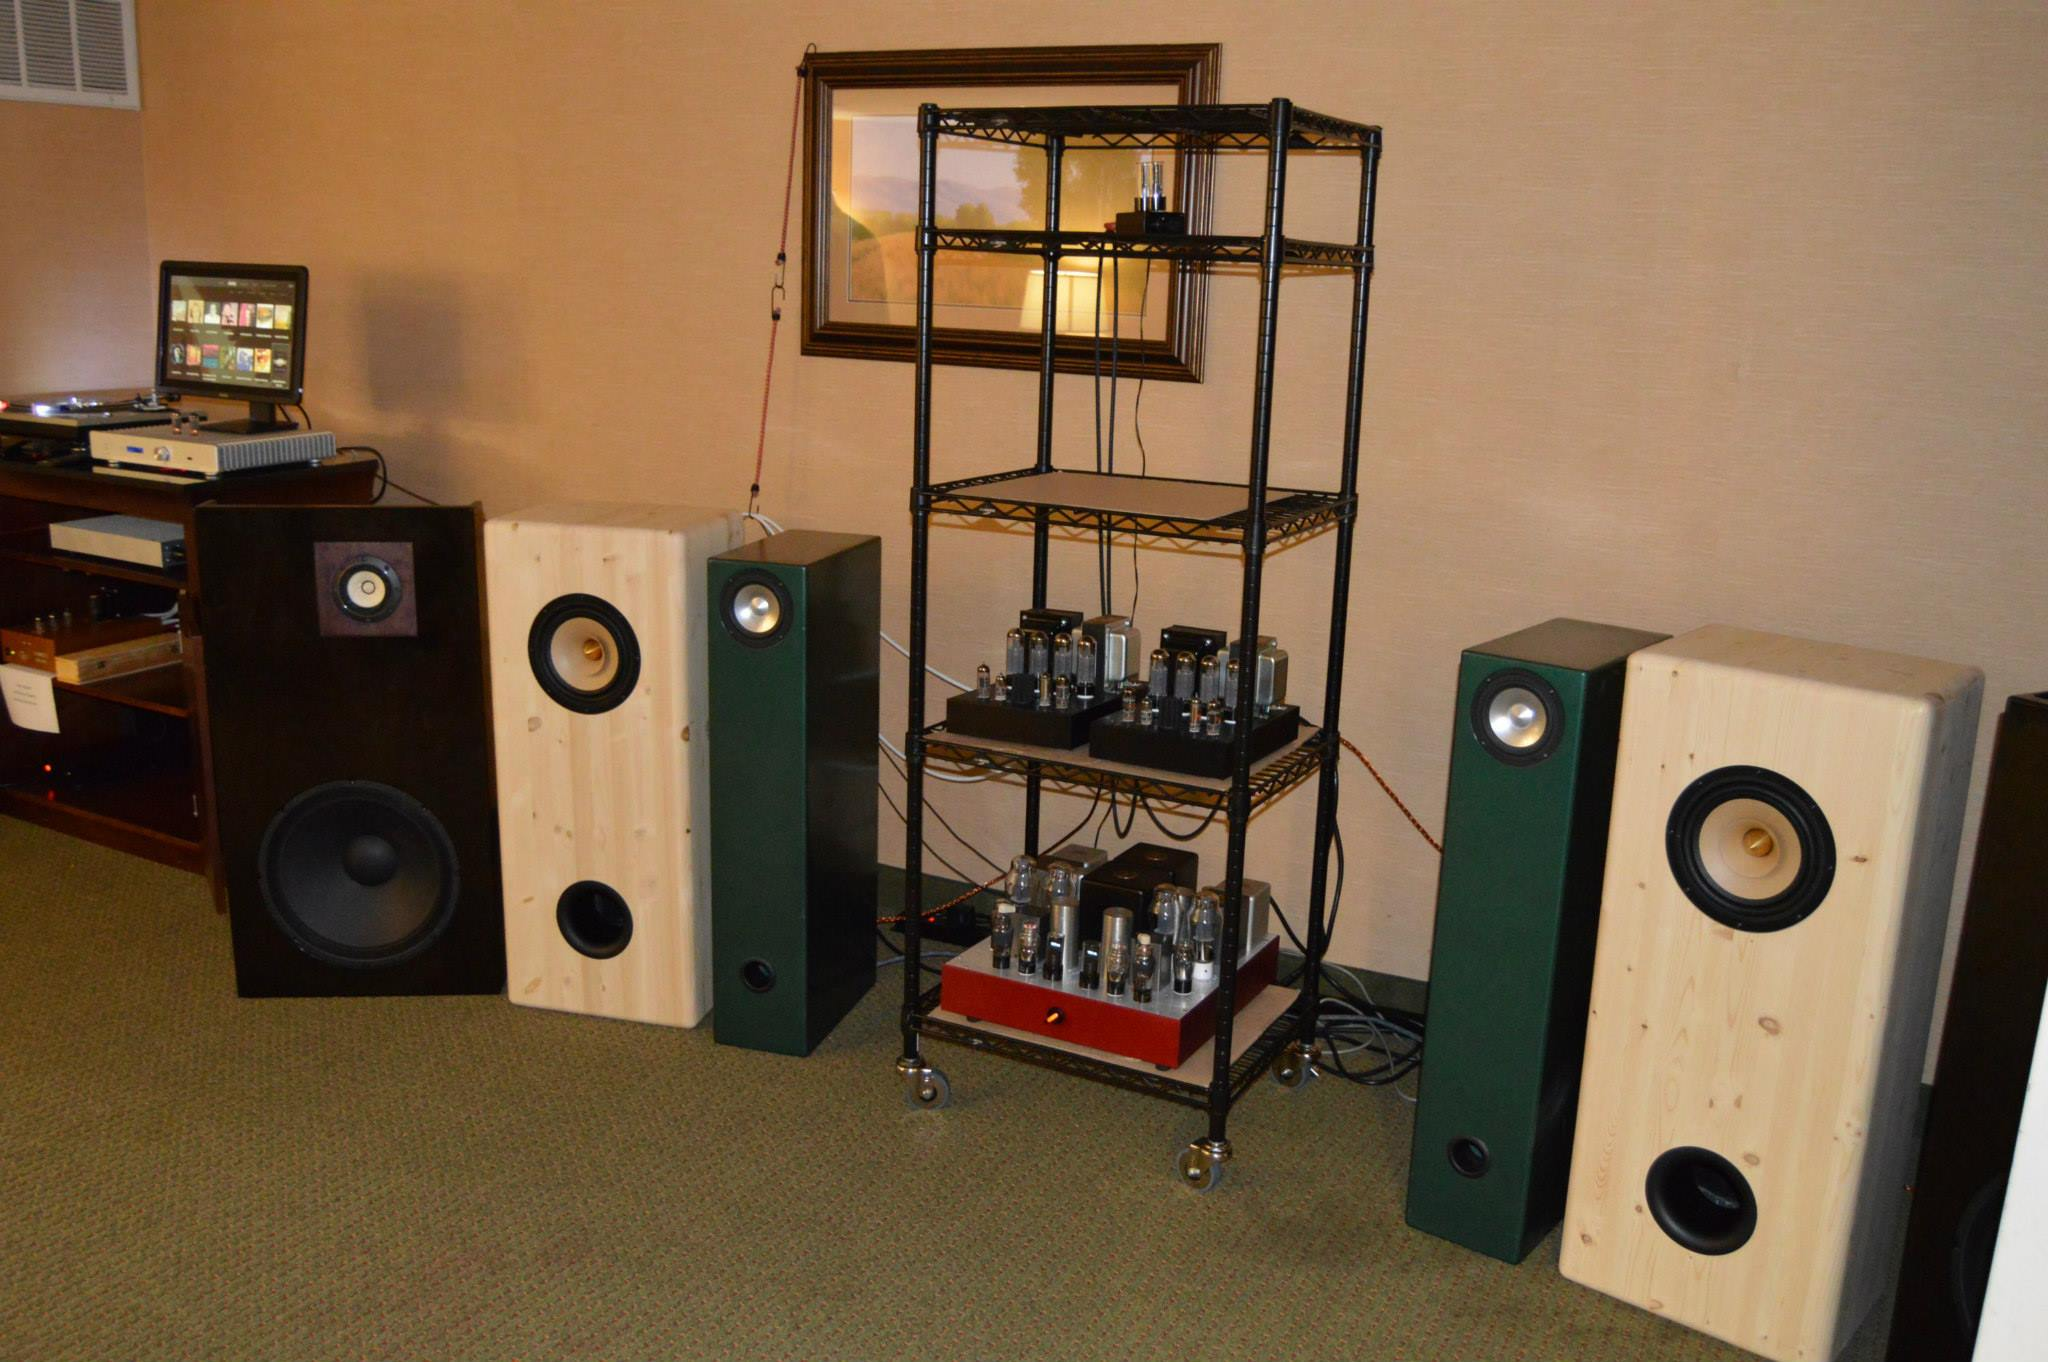 Free Range Full Range Speakers! Really nice to see this stuff.